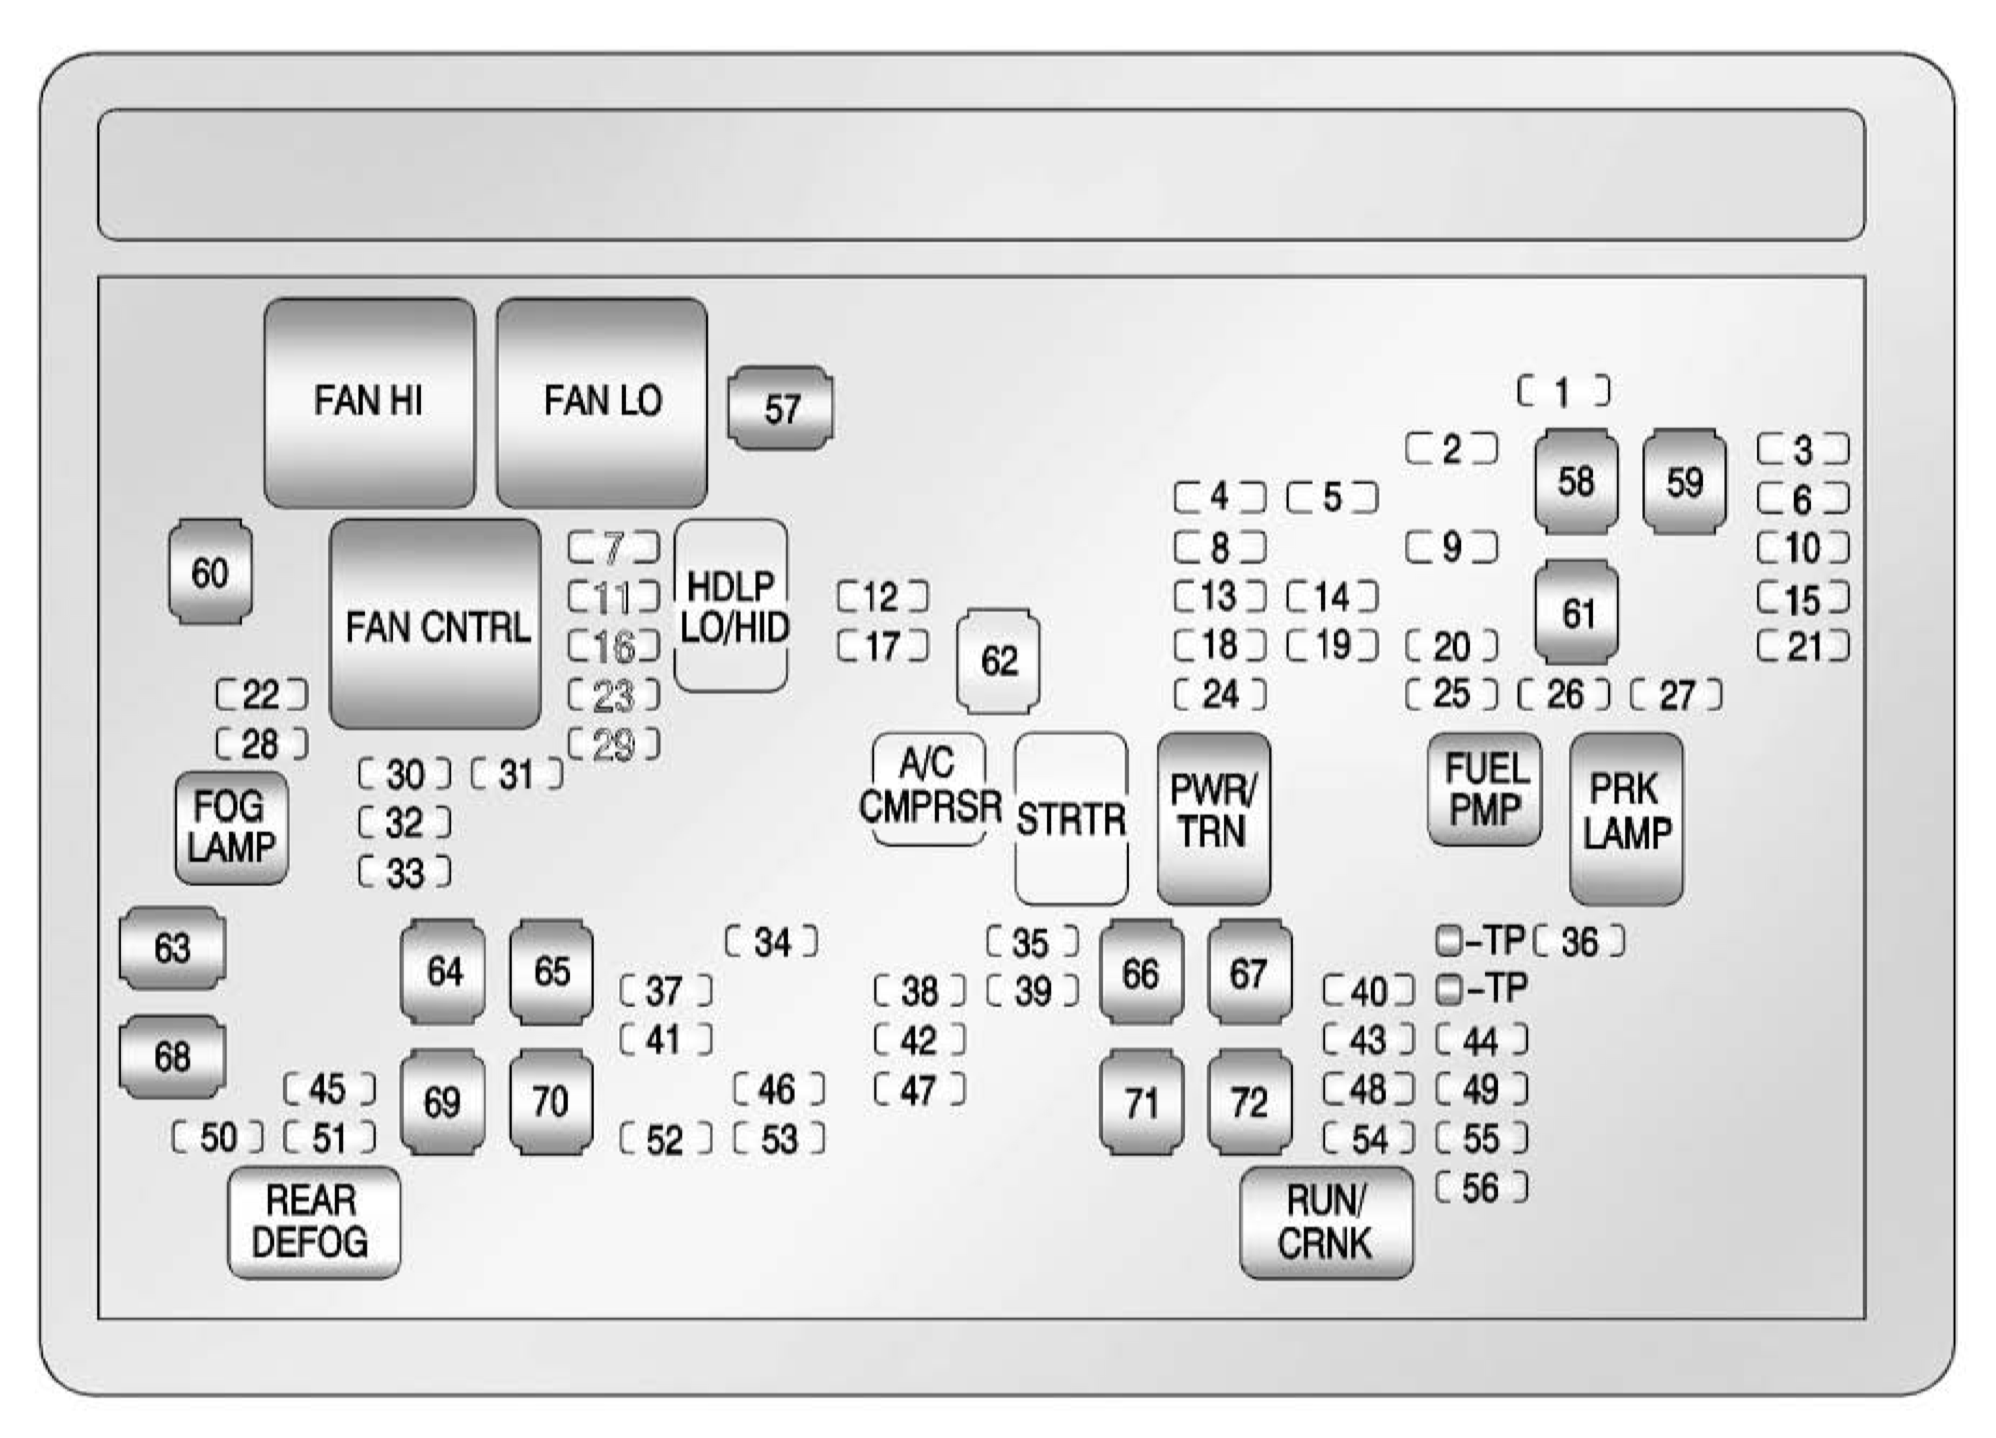 Chevrolet Tahoe 2012 2014 Fuse Box Diagram Auto Genius 1964 Chevy Impala Wiring